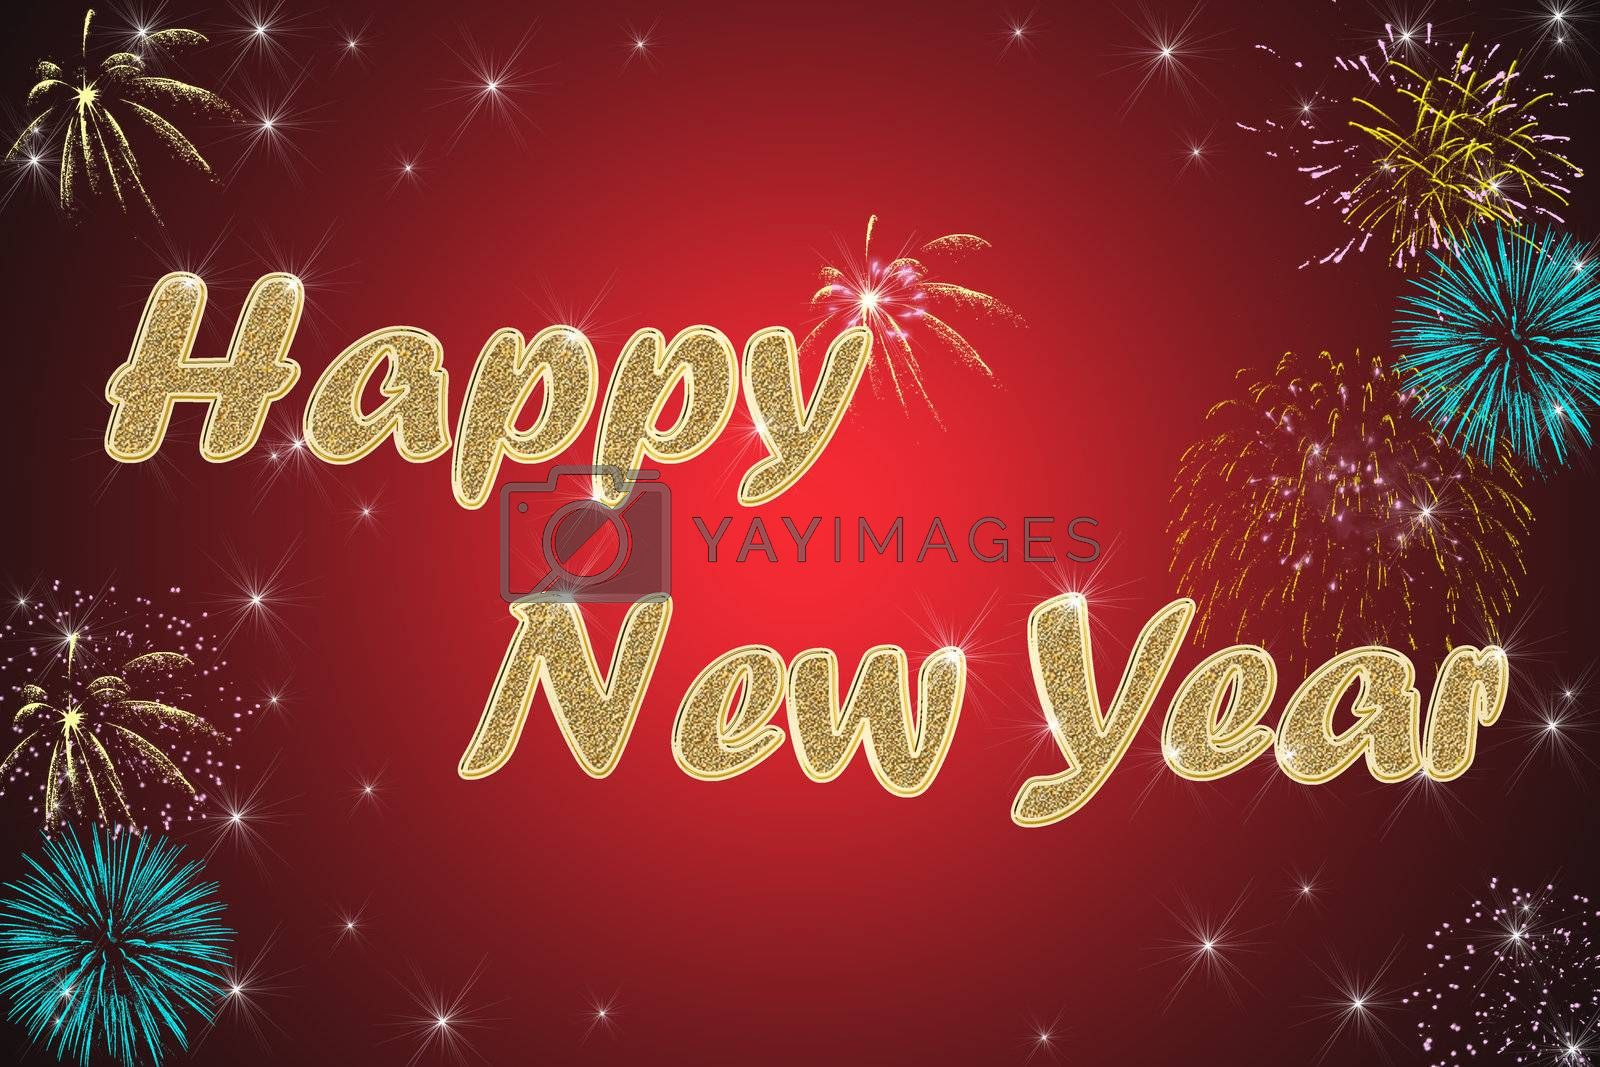 Royalty free image of happy new year red background by Dessie_bg